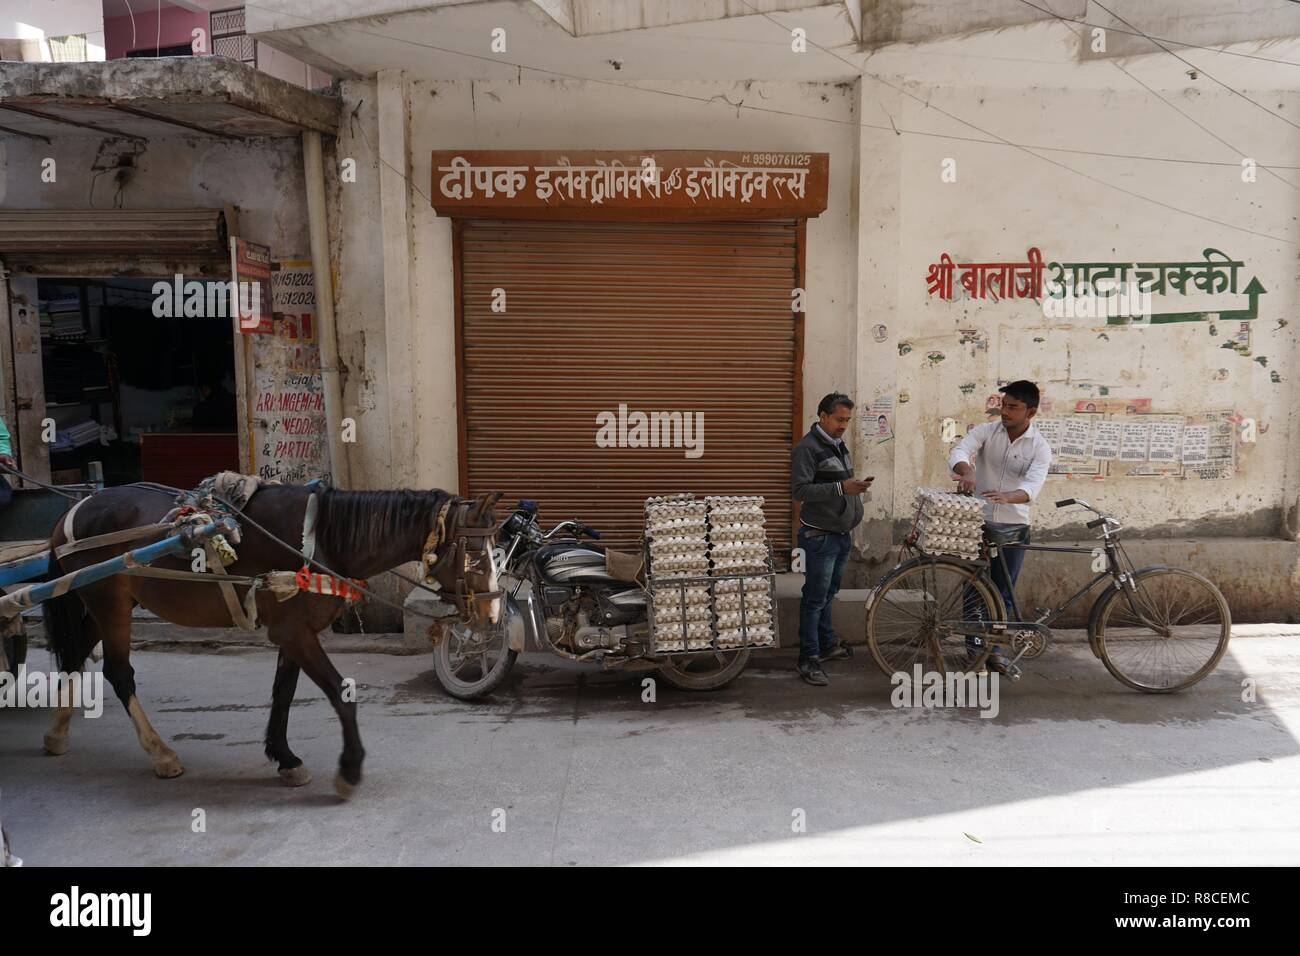 Egg merchant supply chain, delivery by motorcycle and bicycle in New Delhi, India. Stock Photo